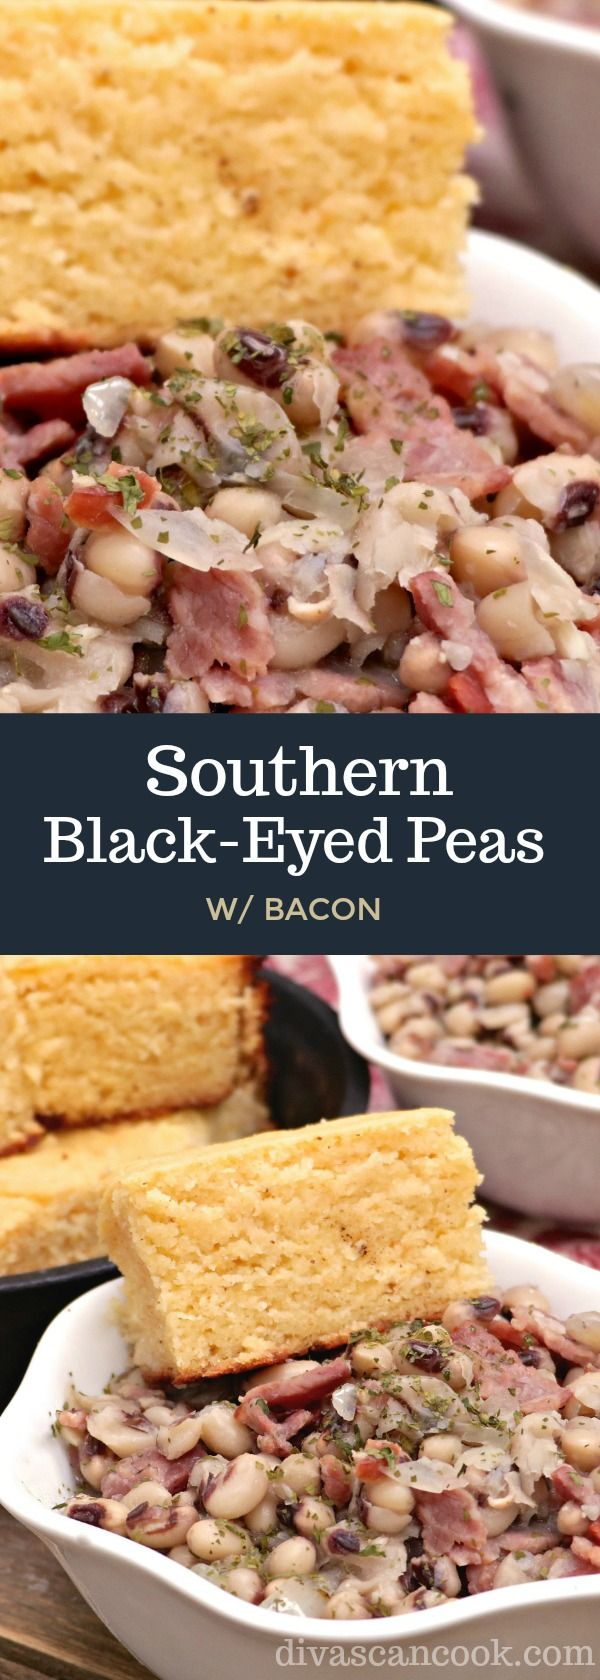 Southern Black Eyed Peas! Simmer in chicken broth, onions, garlic, spices and lots of bacon!